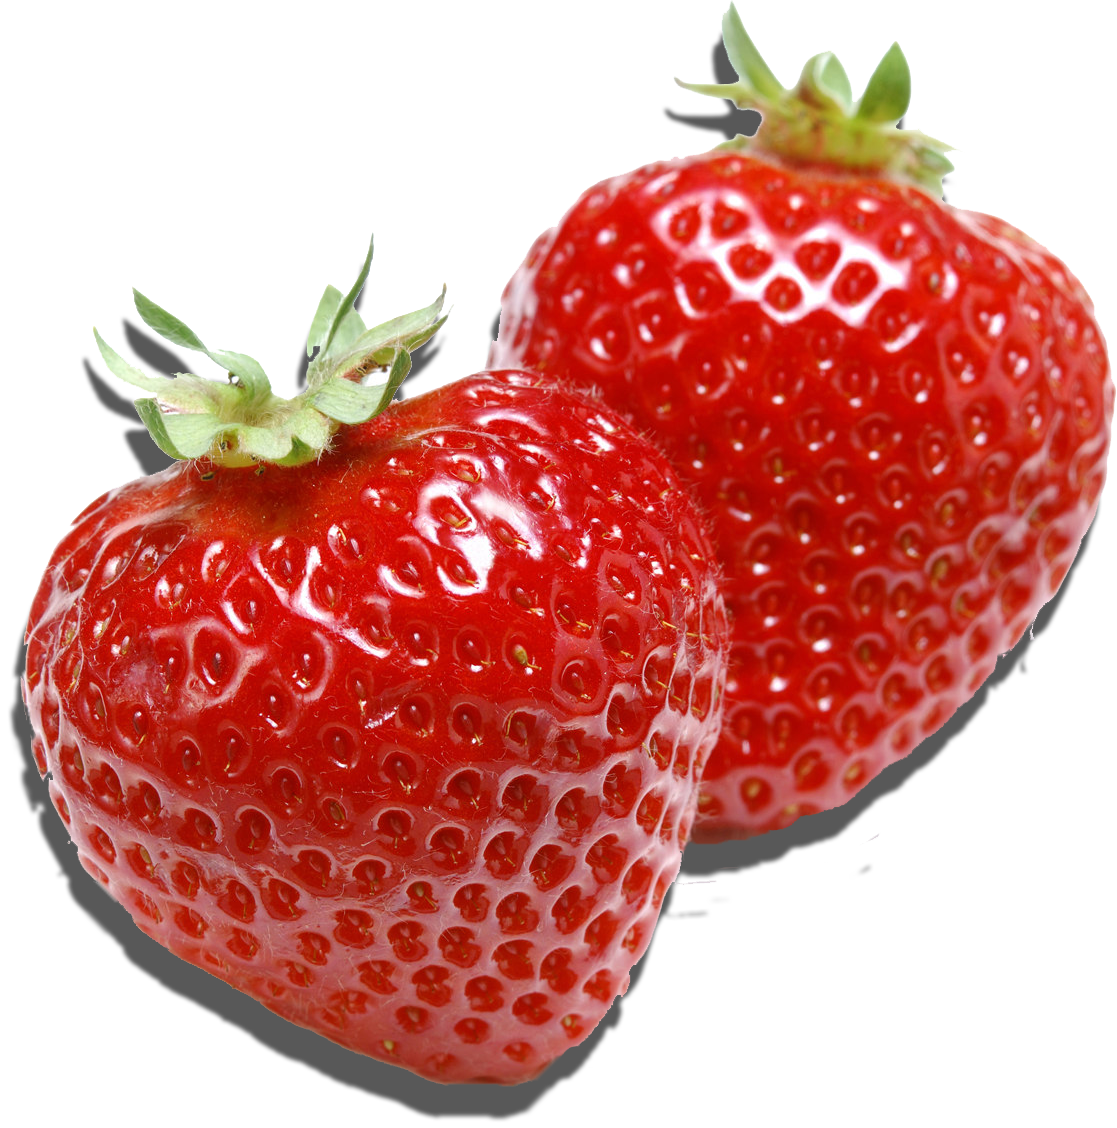 PNG File Name: Strawberry PlusPng.com  - Strawberry PNG